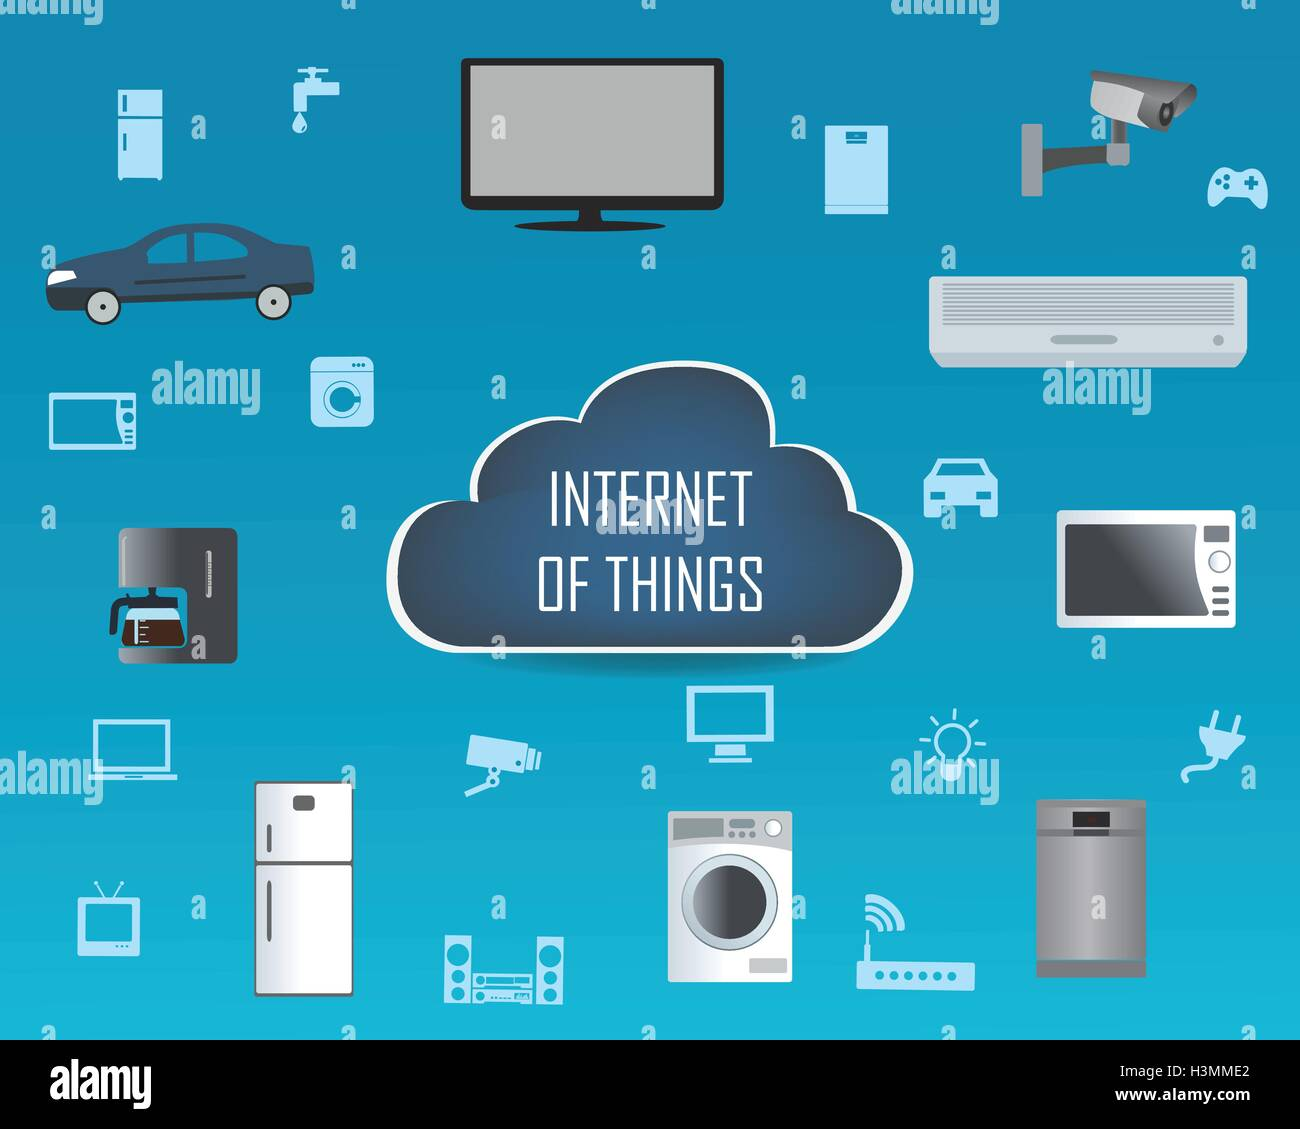 internet of things concept and cloud computing technology smart home stock vector art. Black Bedroom Furniture Sets. Home Design Ideas